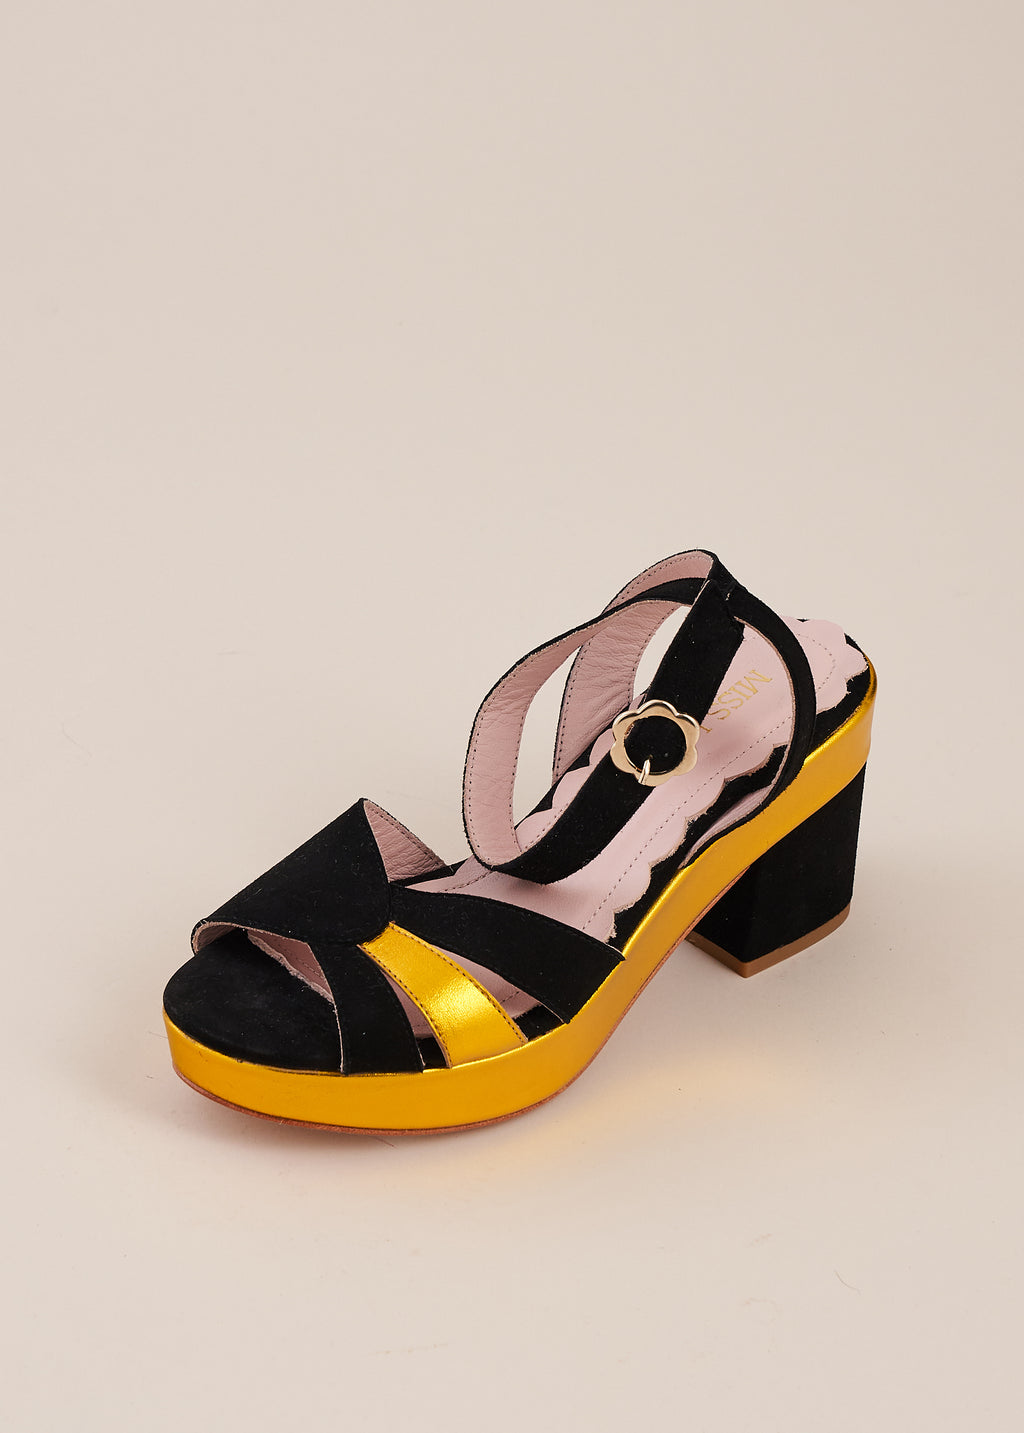 Cora in black suede and gold leather by Miss L Fire is a half wedge sandal with vintage art deco inspired sunburst detail. Small batch, ethically hand made in Spain.